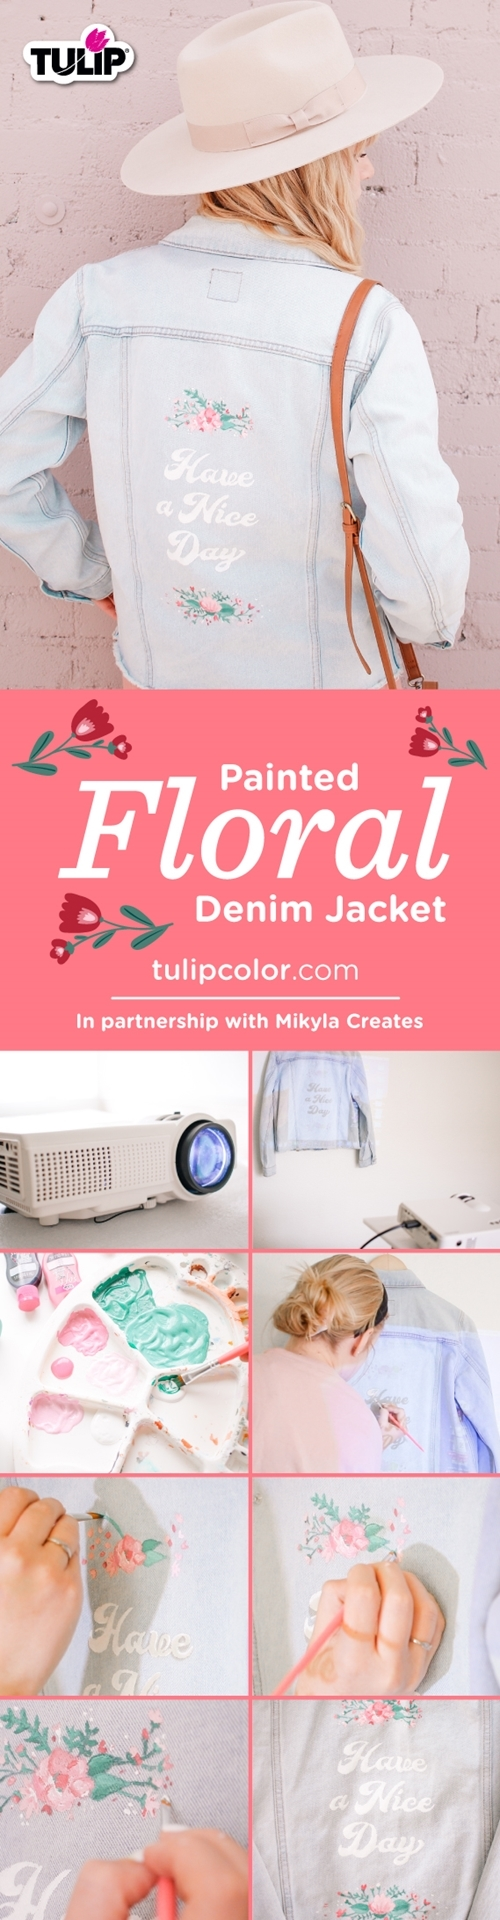 Tulip Painted Floral Denim Jacket